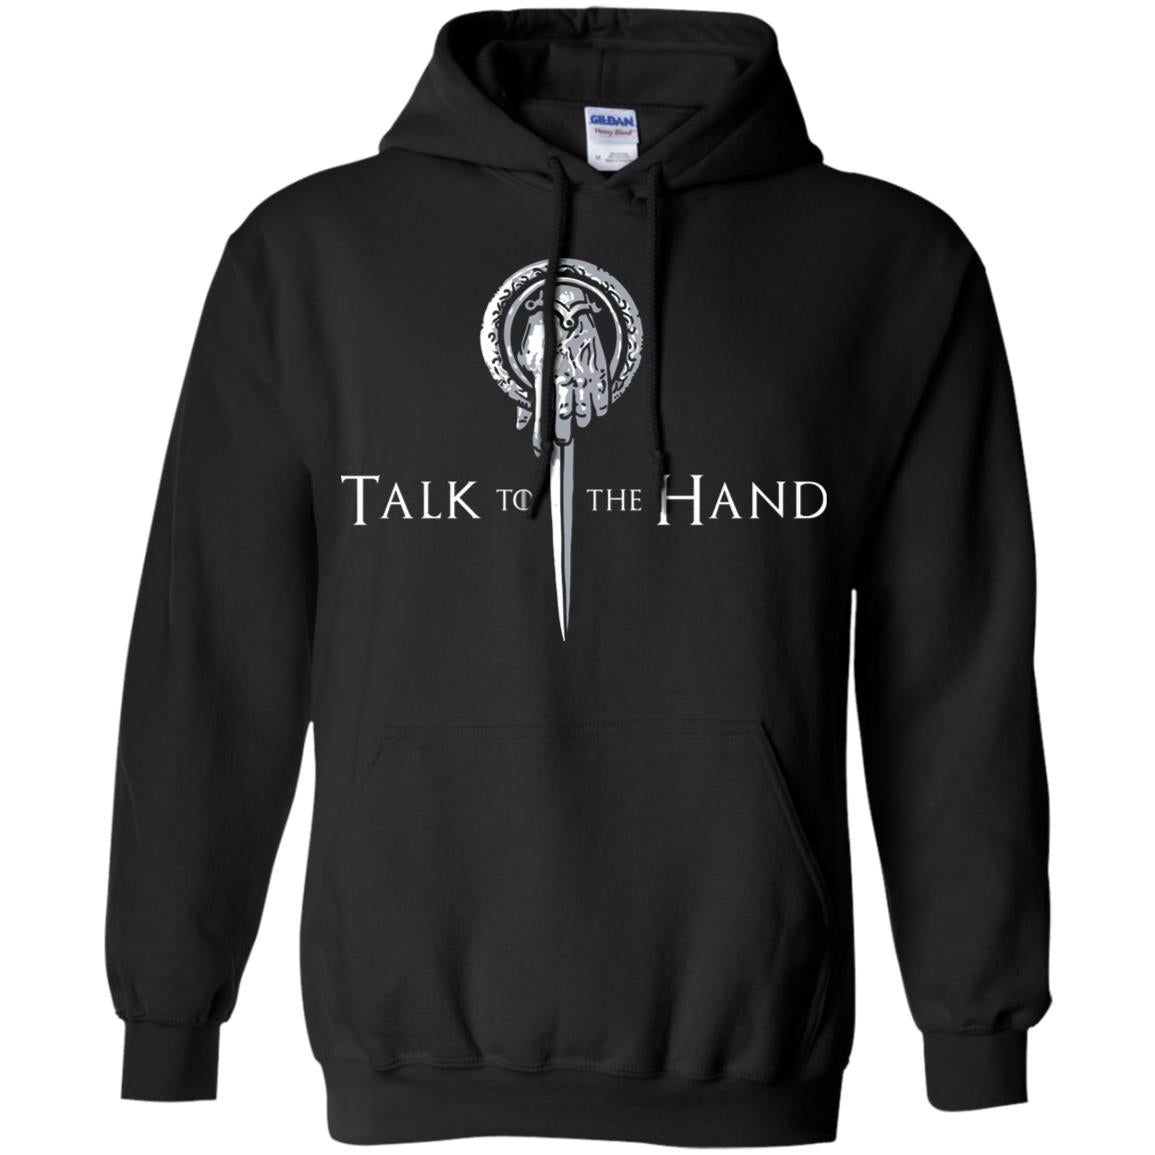 Talk to the hand GOT shirt